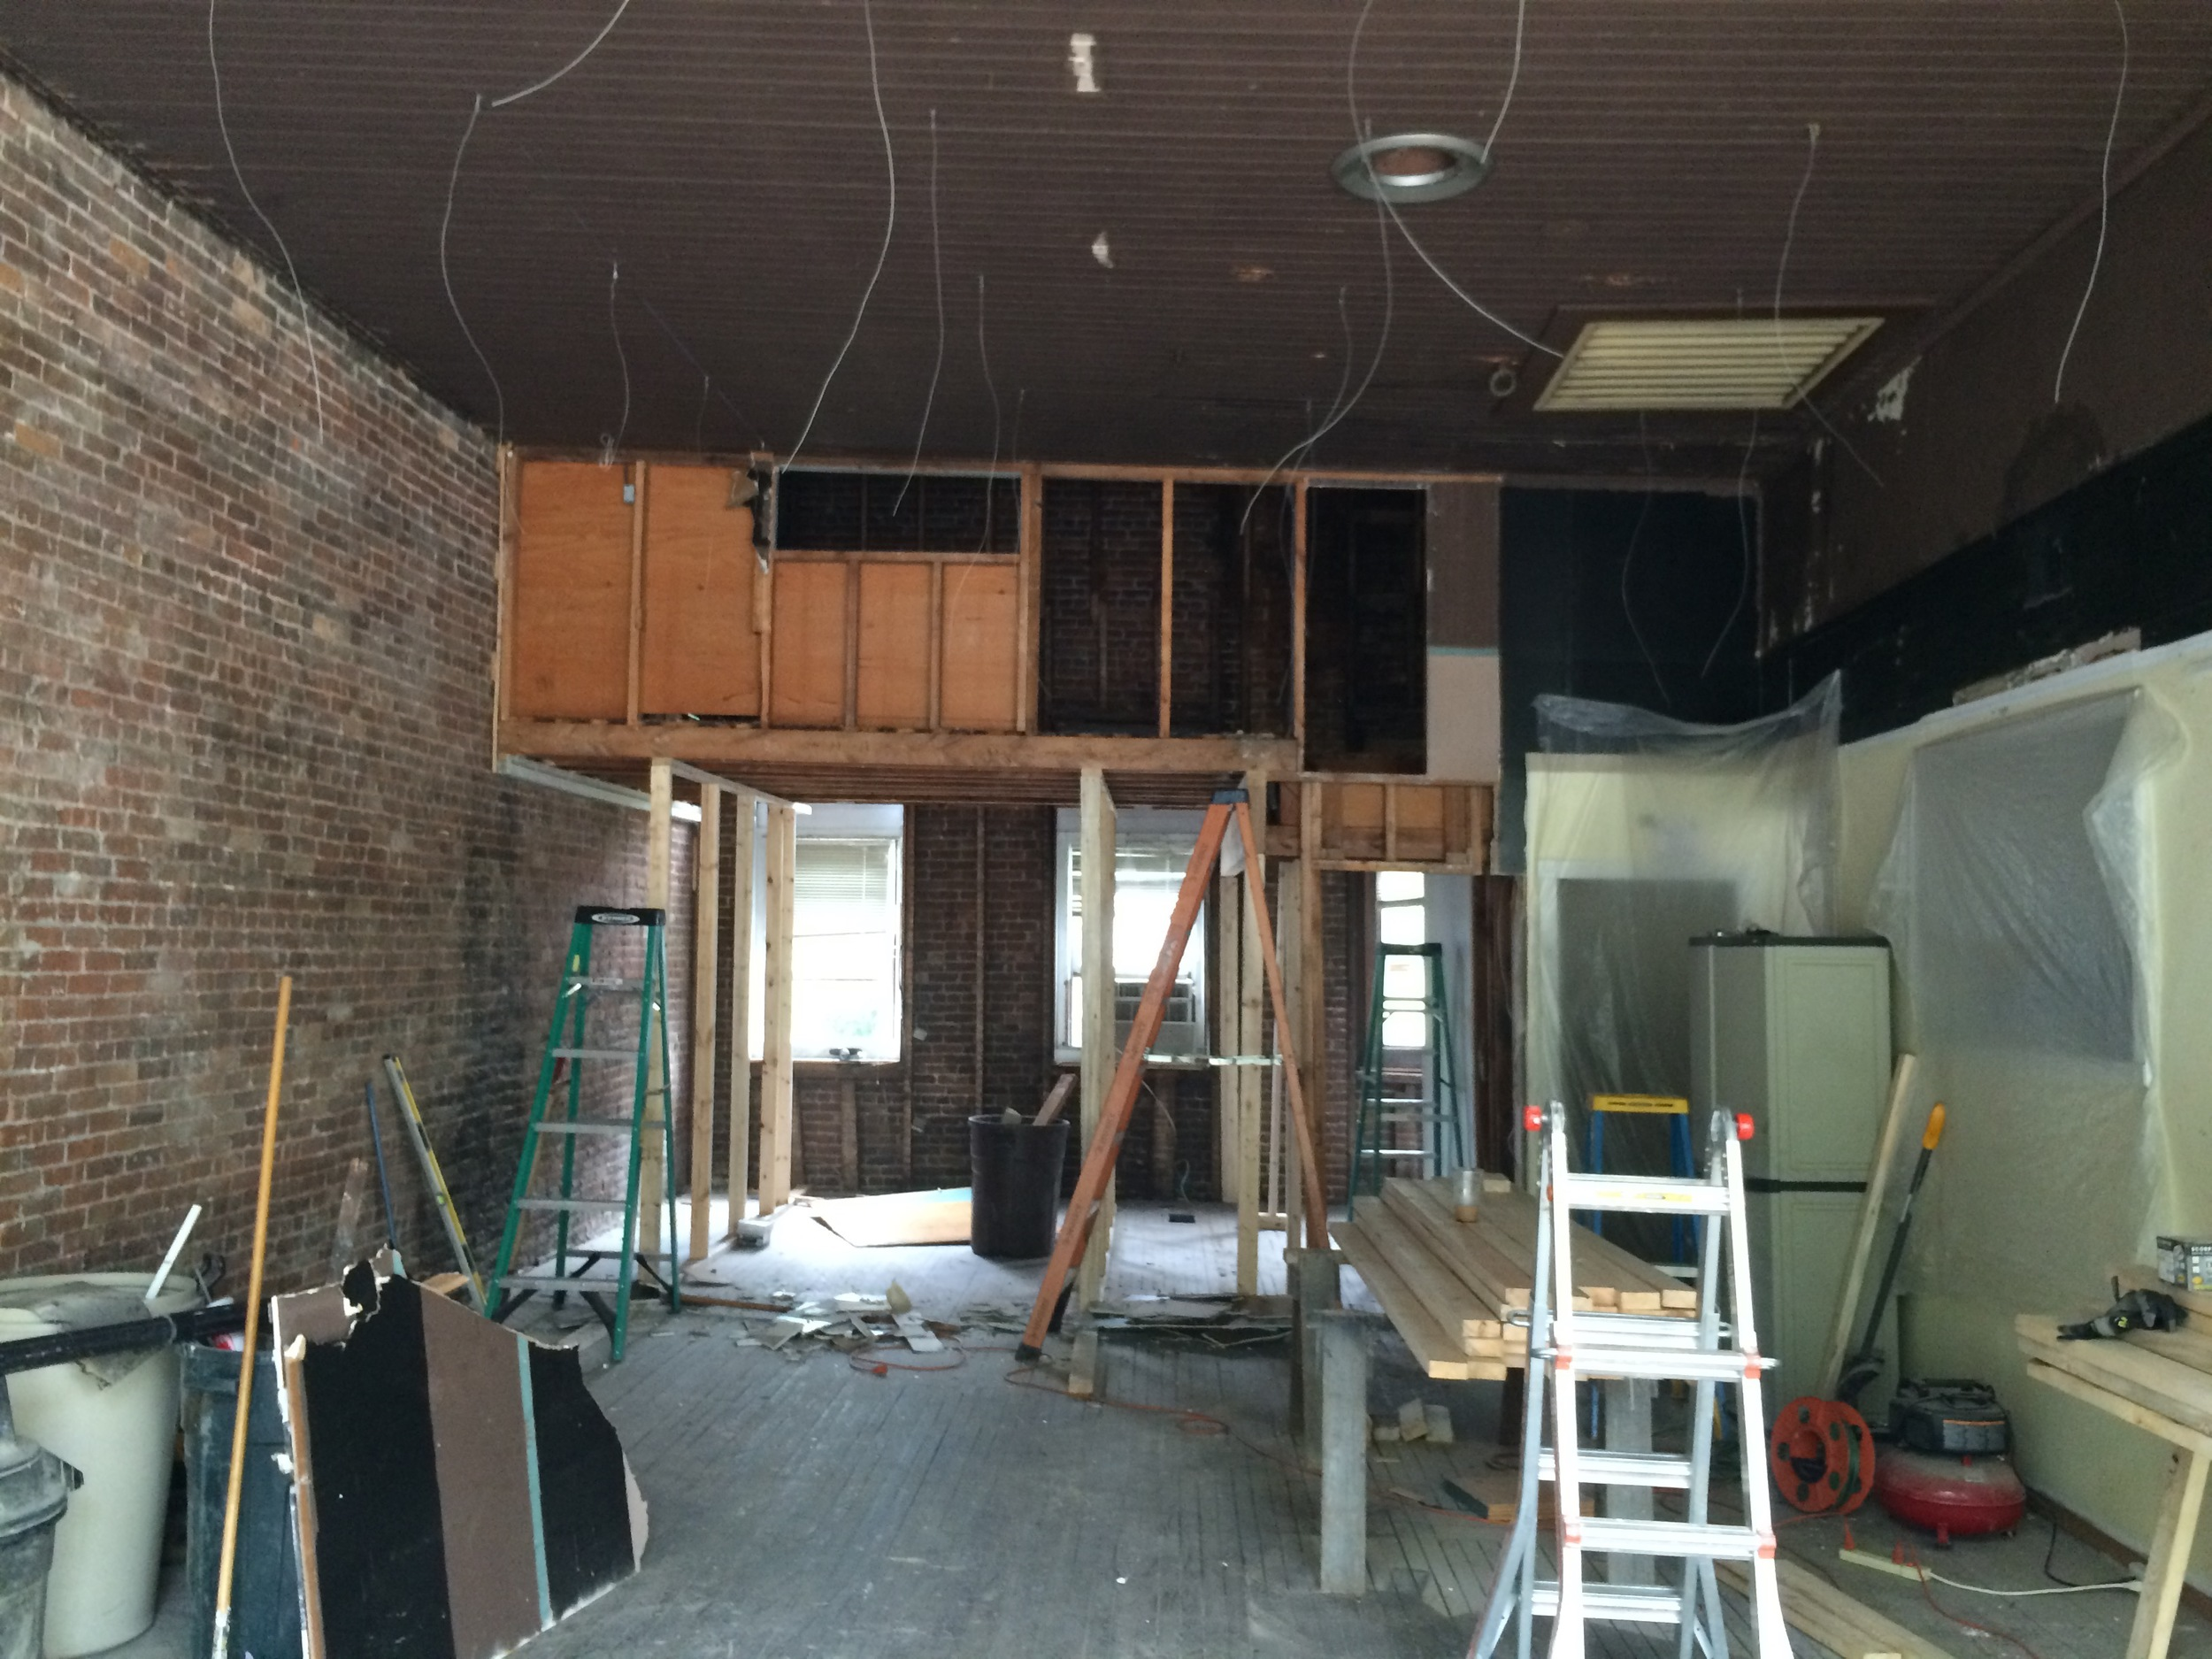 The former DJ booth becoming a loft office